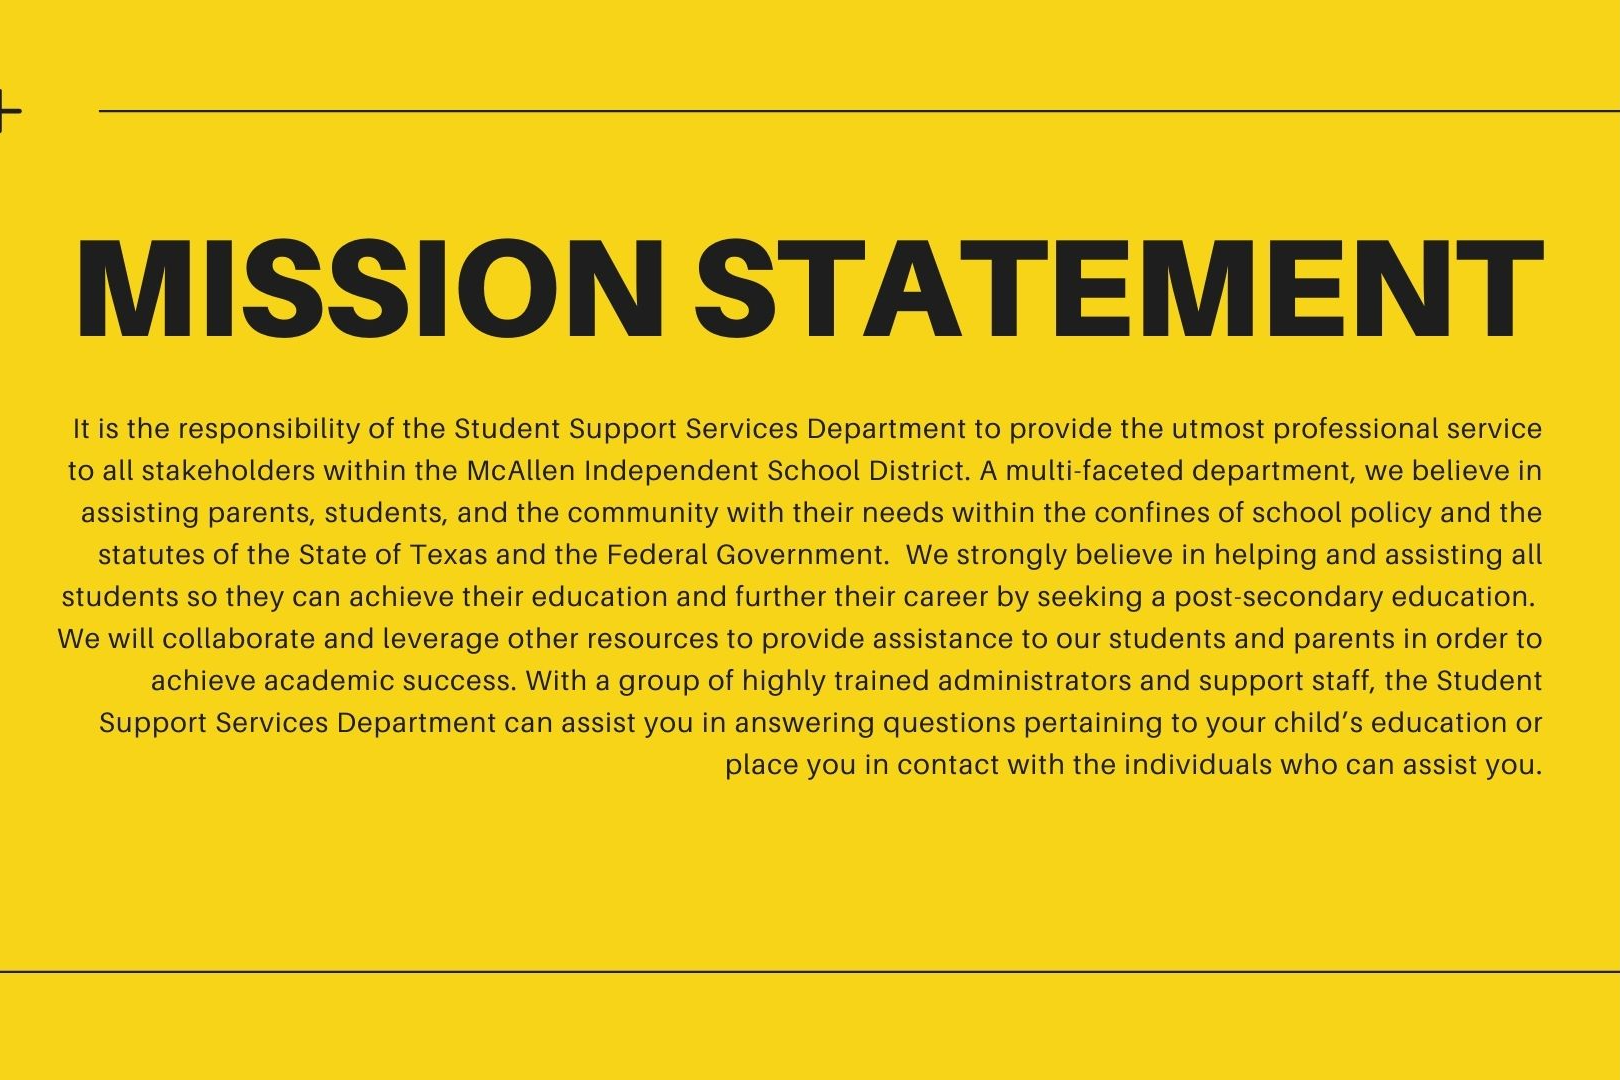 Mission Statement - It is the responsibility of the Student Support Services Department to provide the utmost professional service to all stakeholders within the McAllen Independent School District.  A multi-faceted department, we believe in assisting parents, students, and the community with their needs within the confines of school policy and the statutes of the State of Texas and the Federal Government.  We strongly believe in helping and assisting all students so they can achieve their education and further their career by seeking a post-secondary education.  We will collaborate and leverage other resources to provide assistance to our students and parents in order to achieve academic success.  With a group of highly trained administrators and support staff, the Student Support Services Department can assist you in answering questions pertaining to your child's education or place you in contact with the individuals who can assist you.